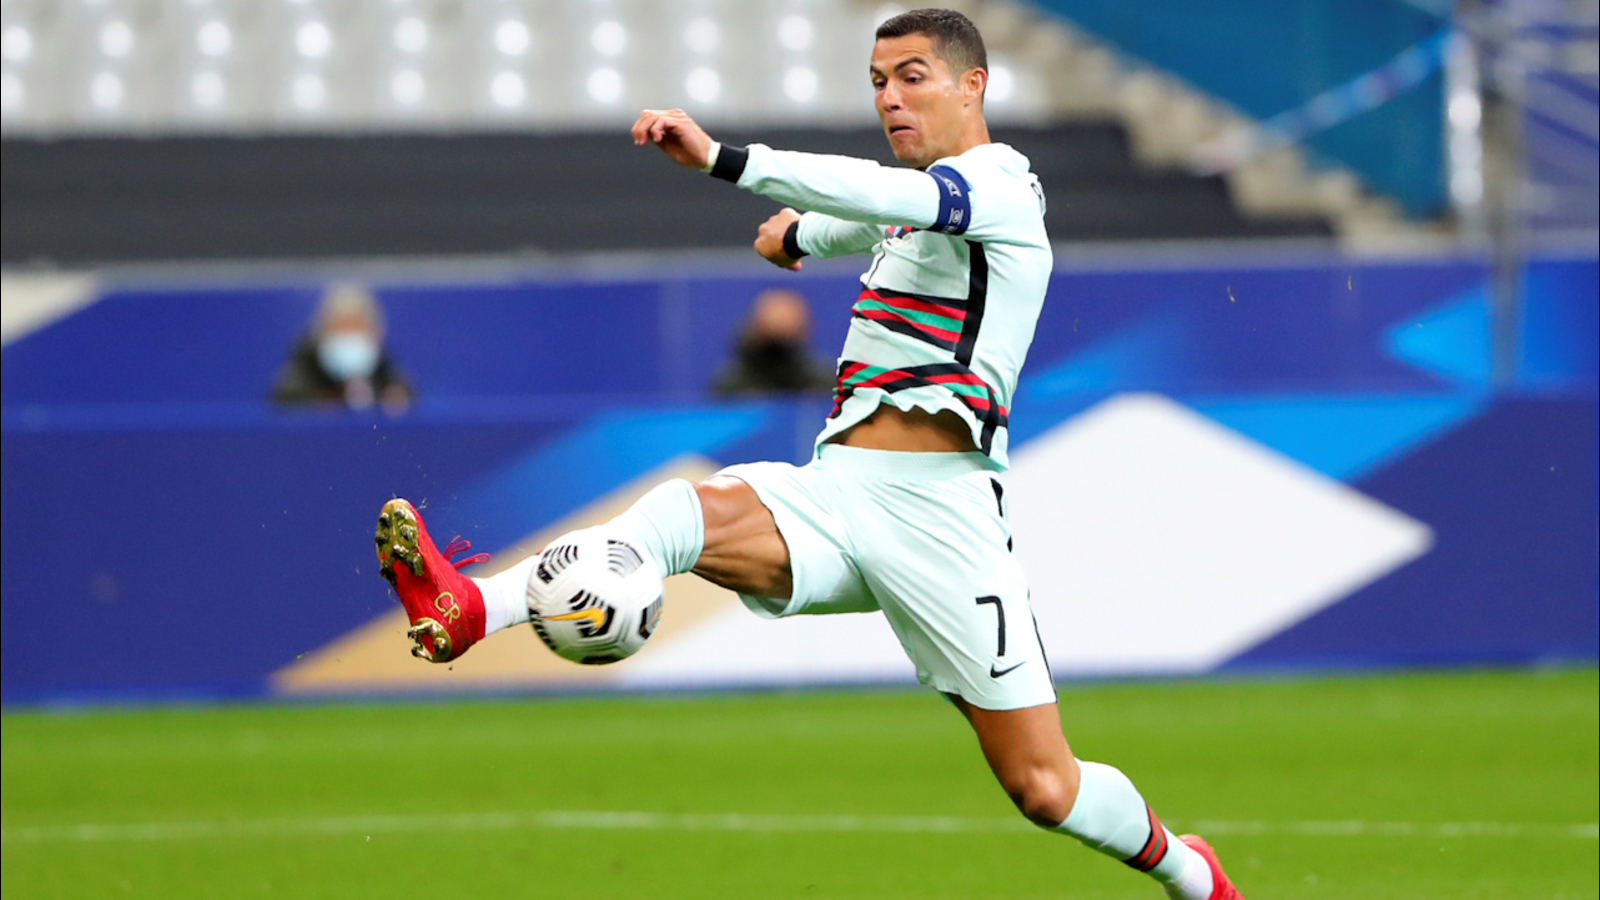 Cristiano Ronaldo Tests Positive For Covid 19 Portuguese Soccer Federation Says Abc7 Los Angeles